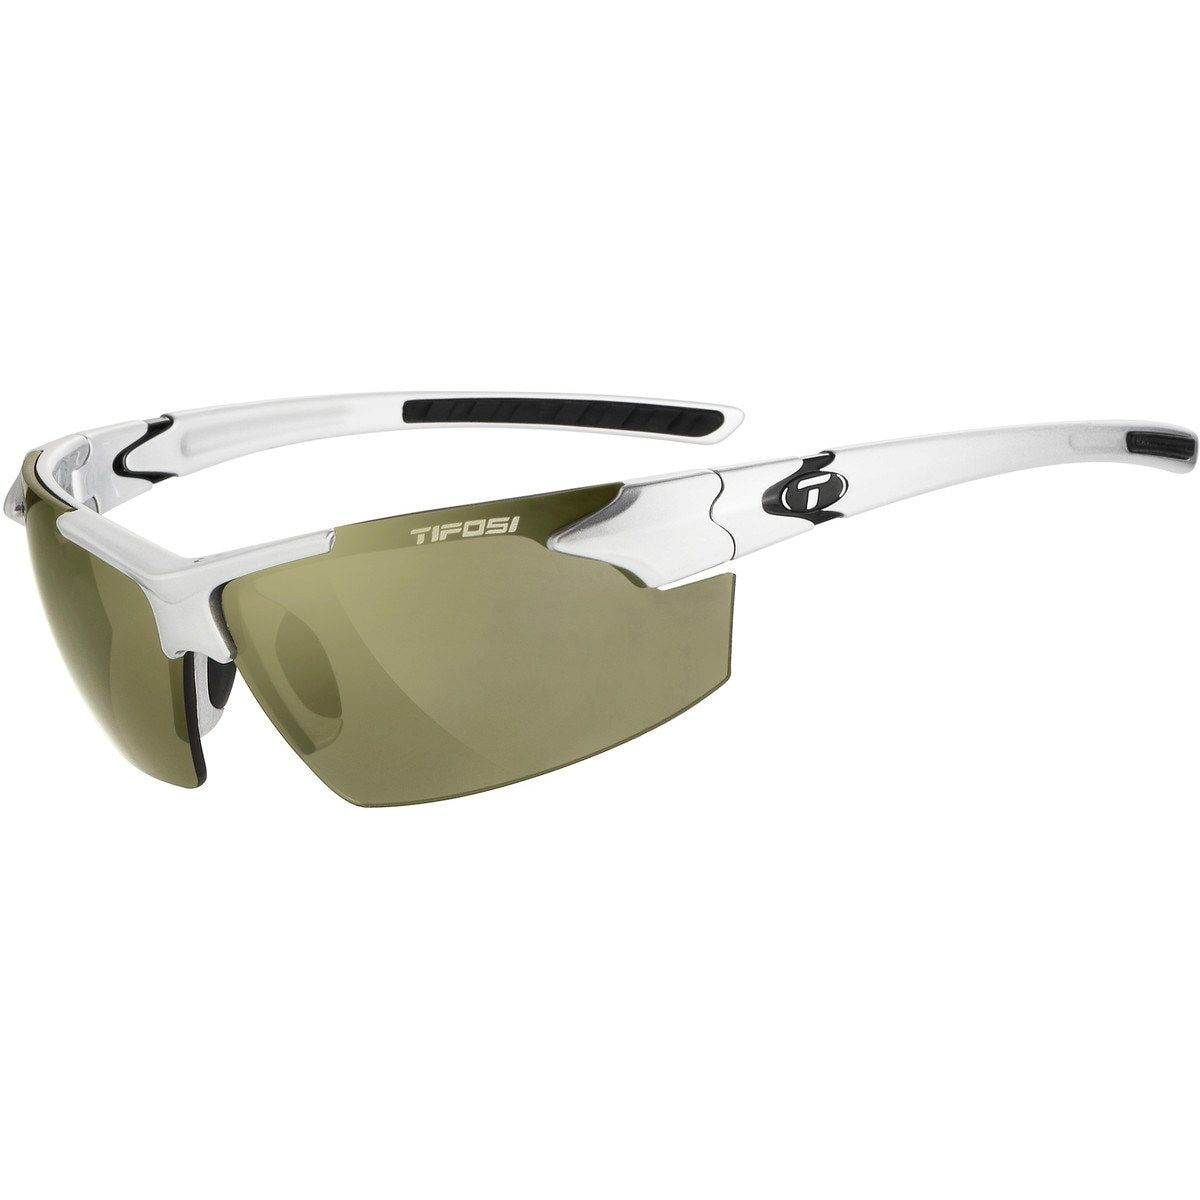 Tifosi Optics Jet FC Sunglasses Men's